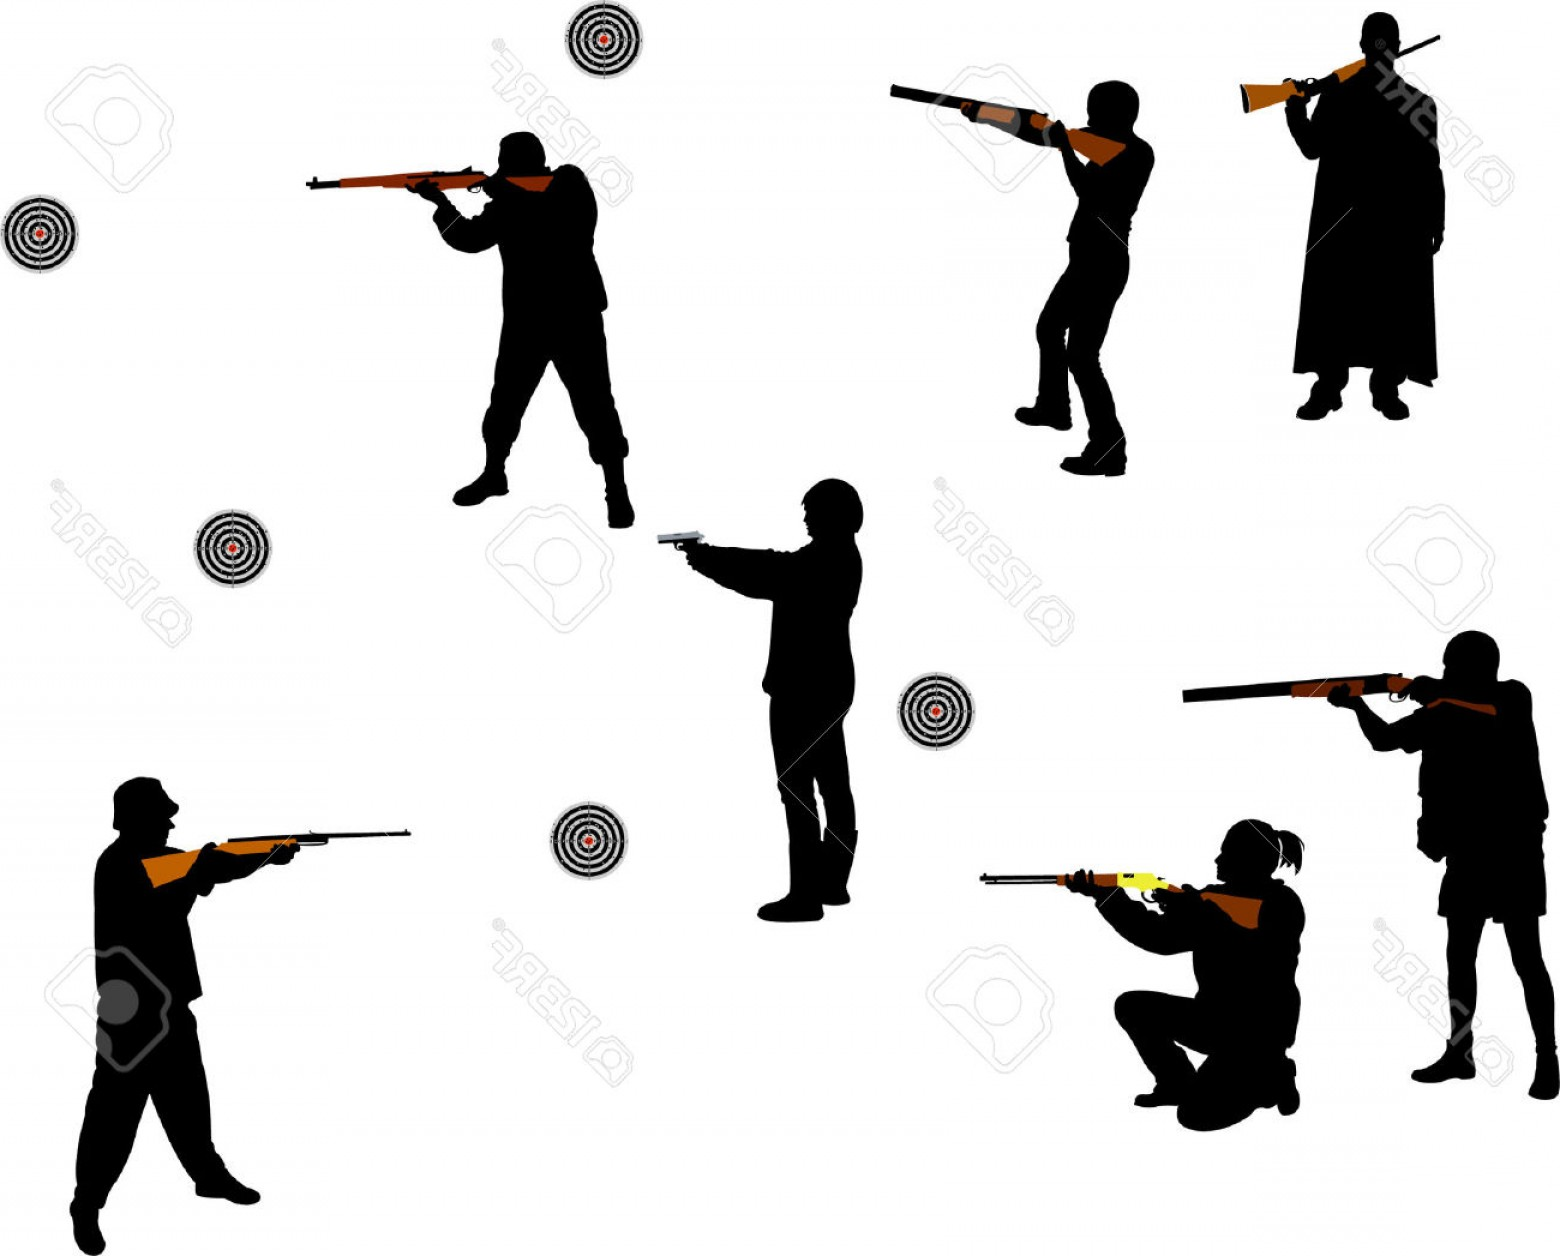 Vector People Free Clip Art: Shooting Shotgun Silhouette Vector People Clipart